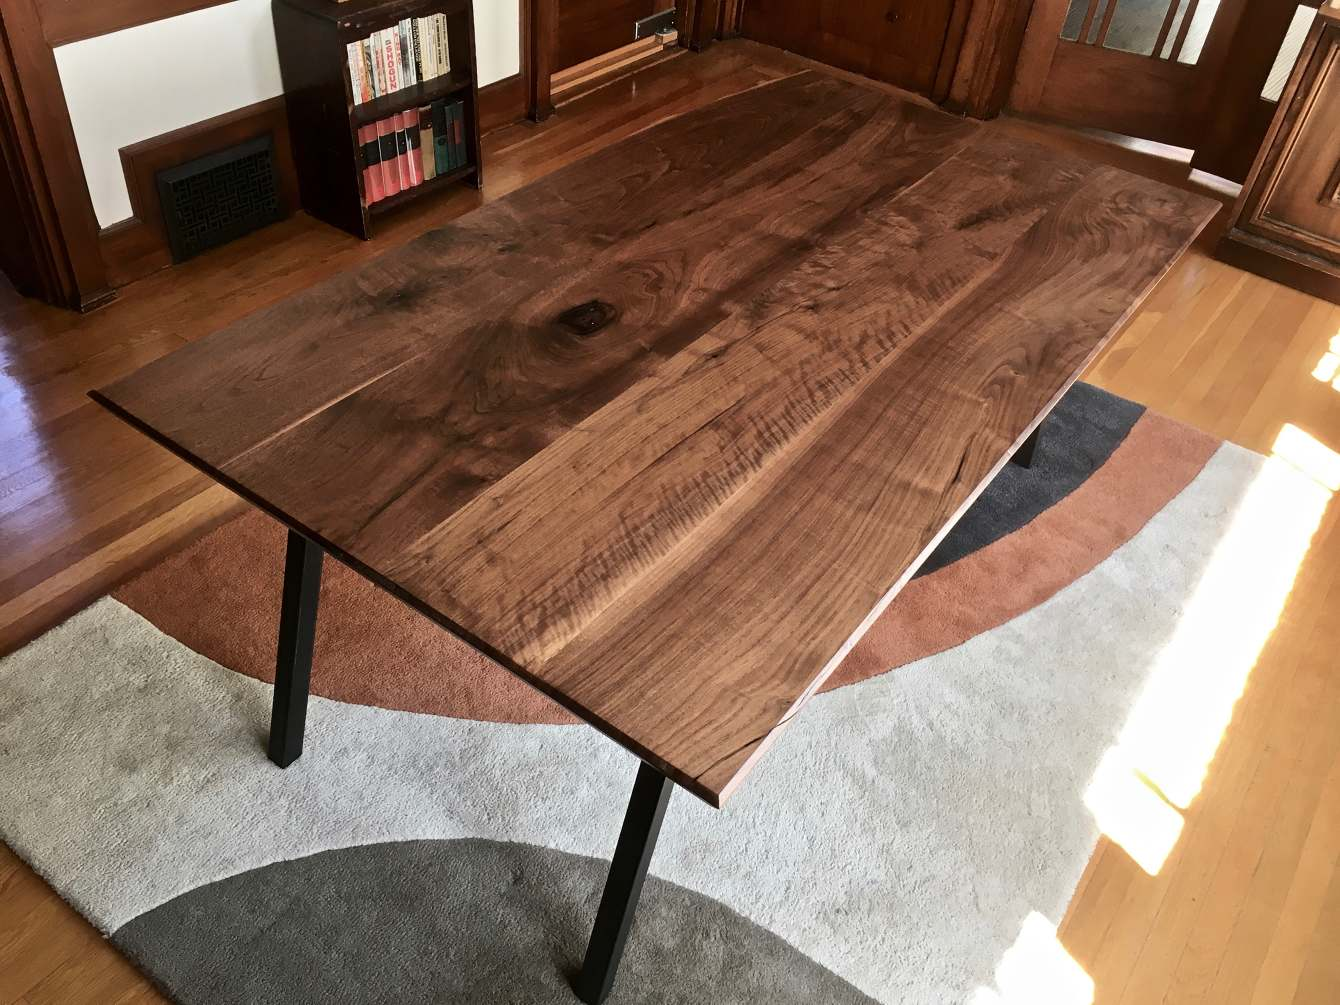 Mid-Century-Modern Black Walnut Dining Table - Ambrose Woodworks